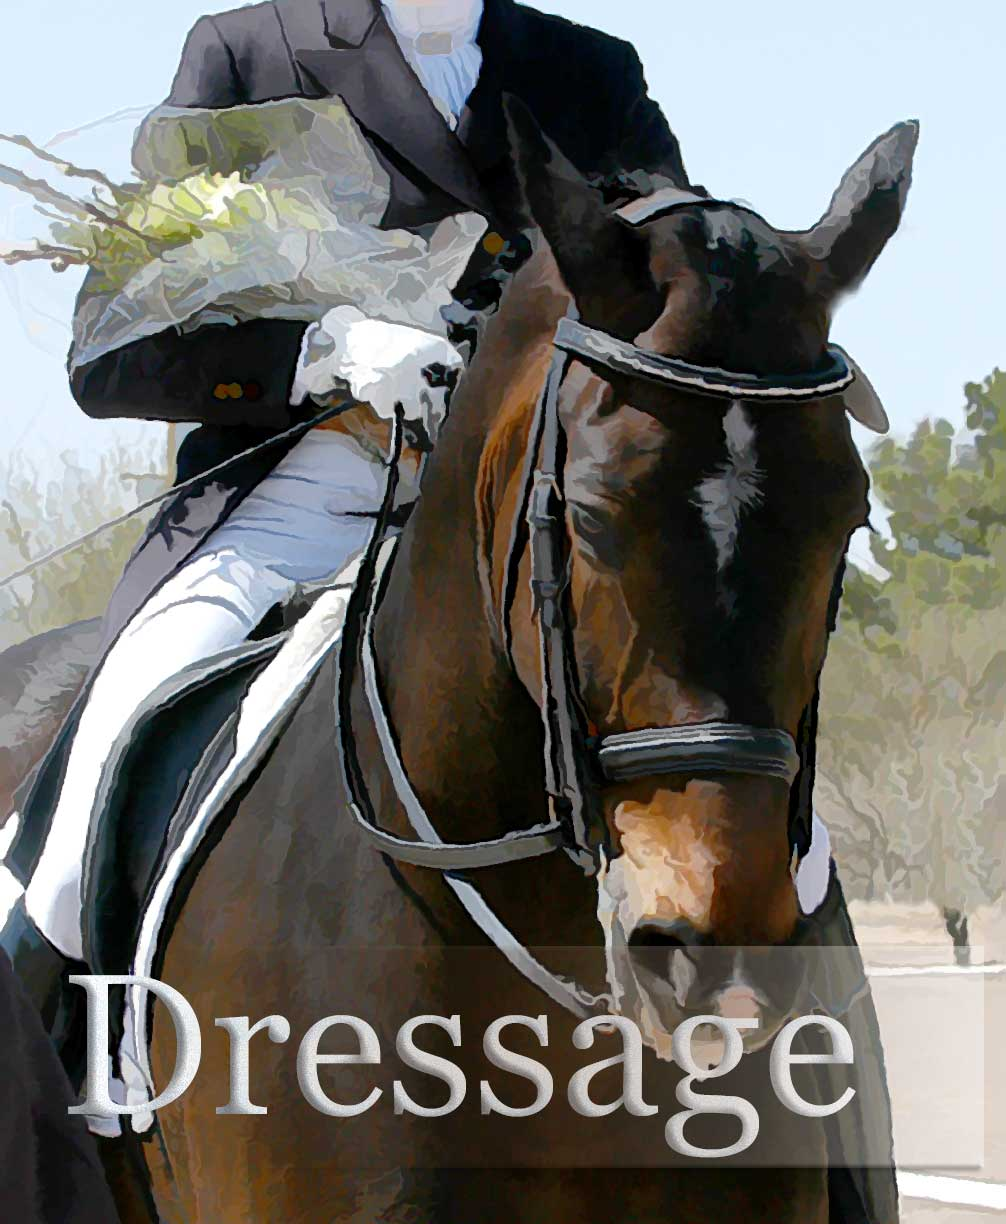 Arizona Dressage Association